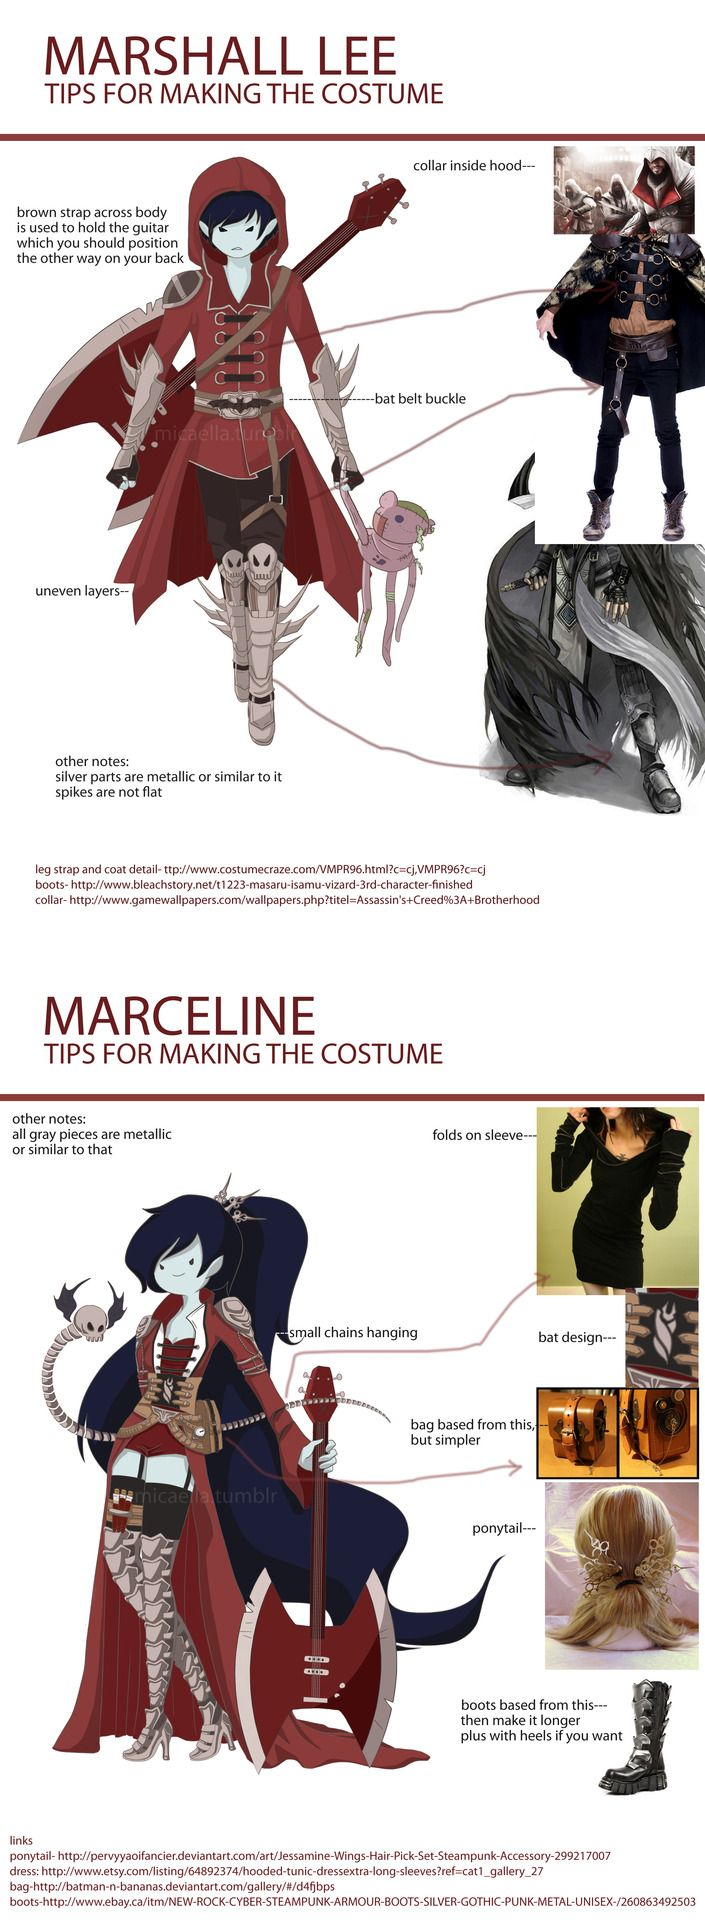 http://25.media.tumblr.com/tumblr_m6r85tUUWO1qbxlyfo1_1280.jpg Marshal lee and marceline cosplays